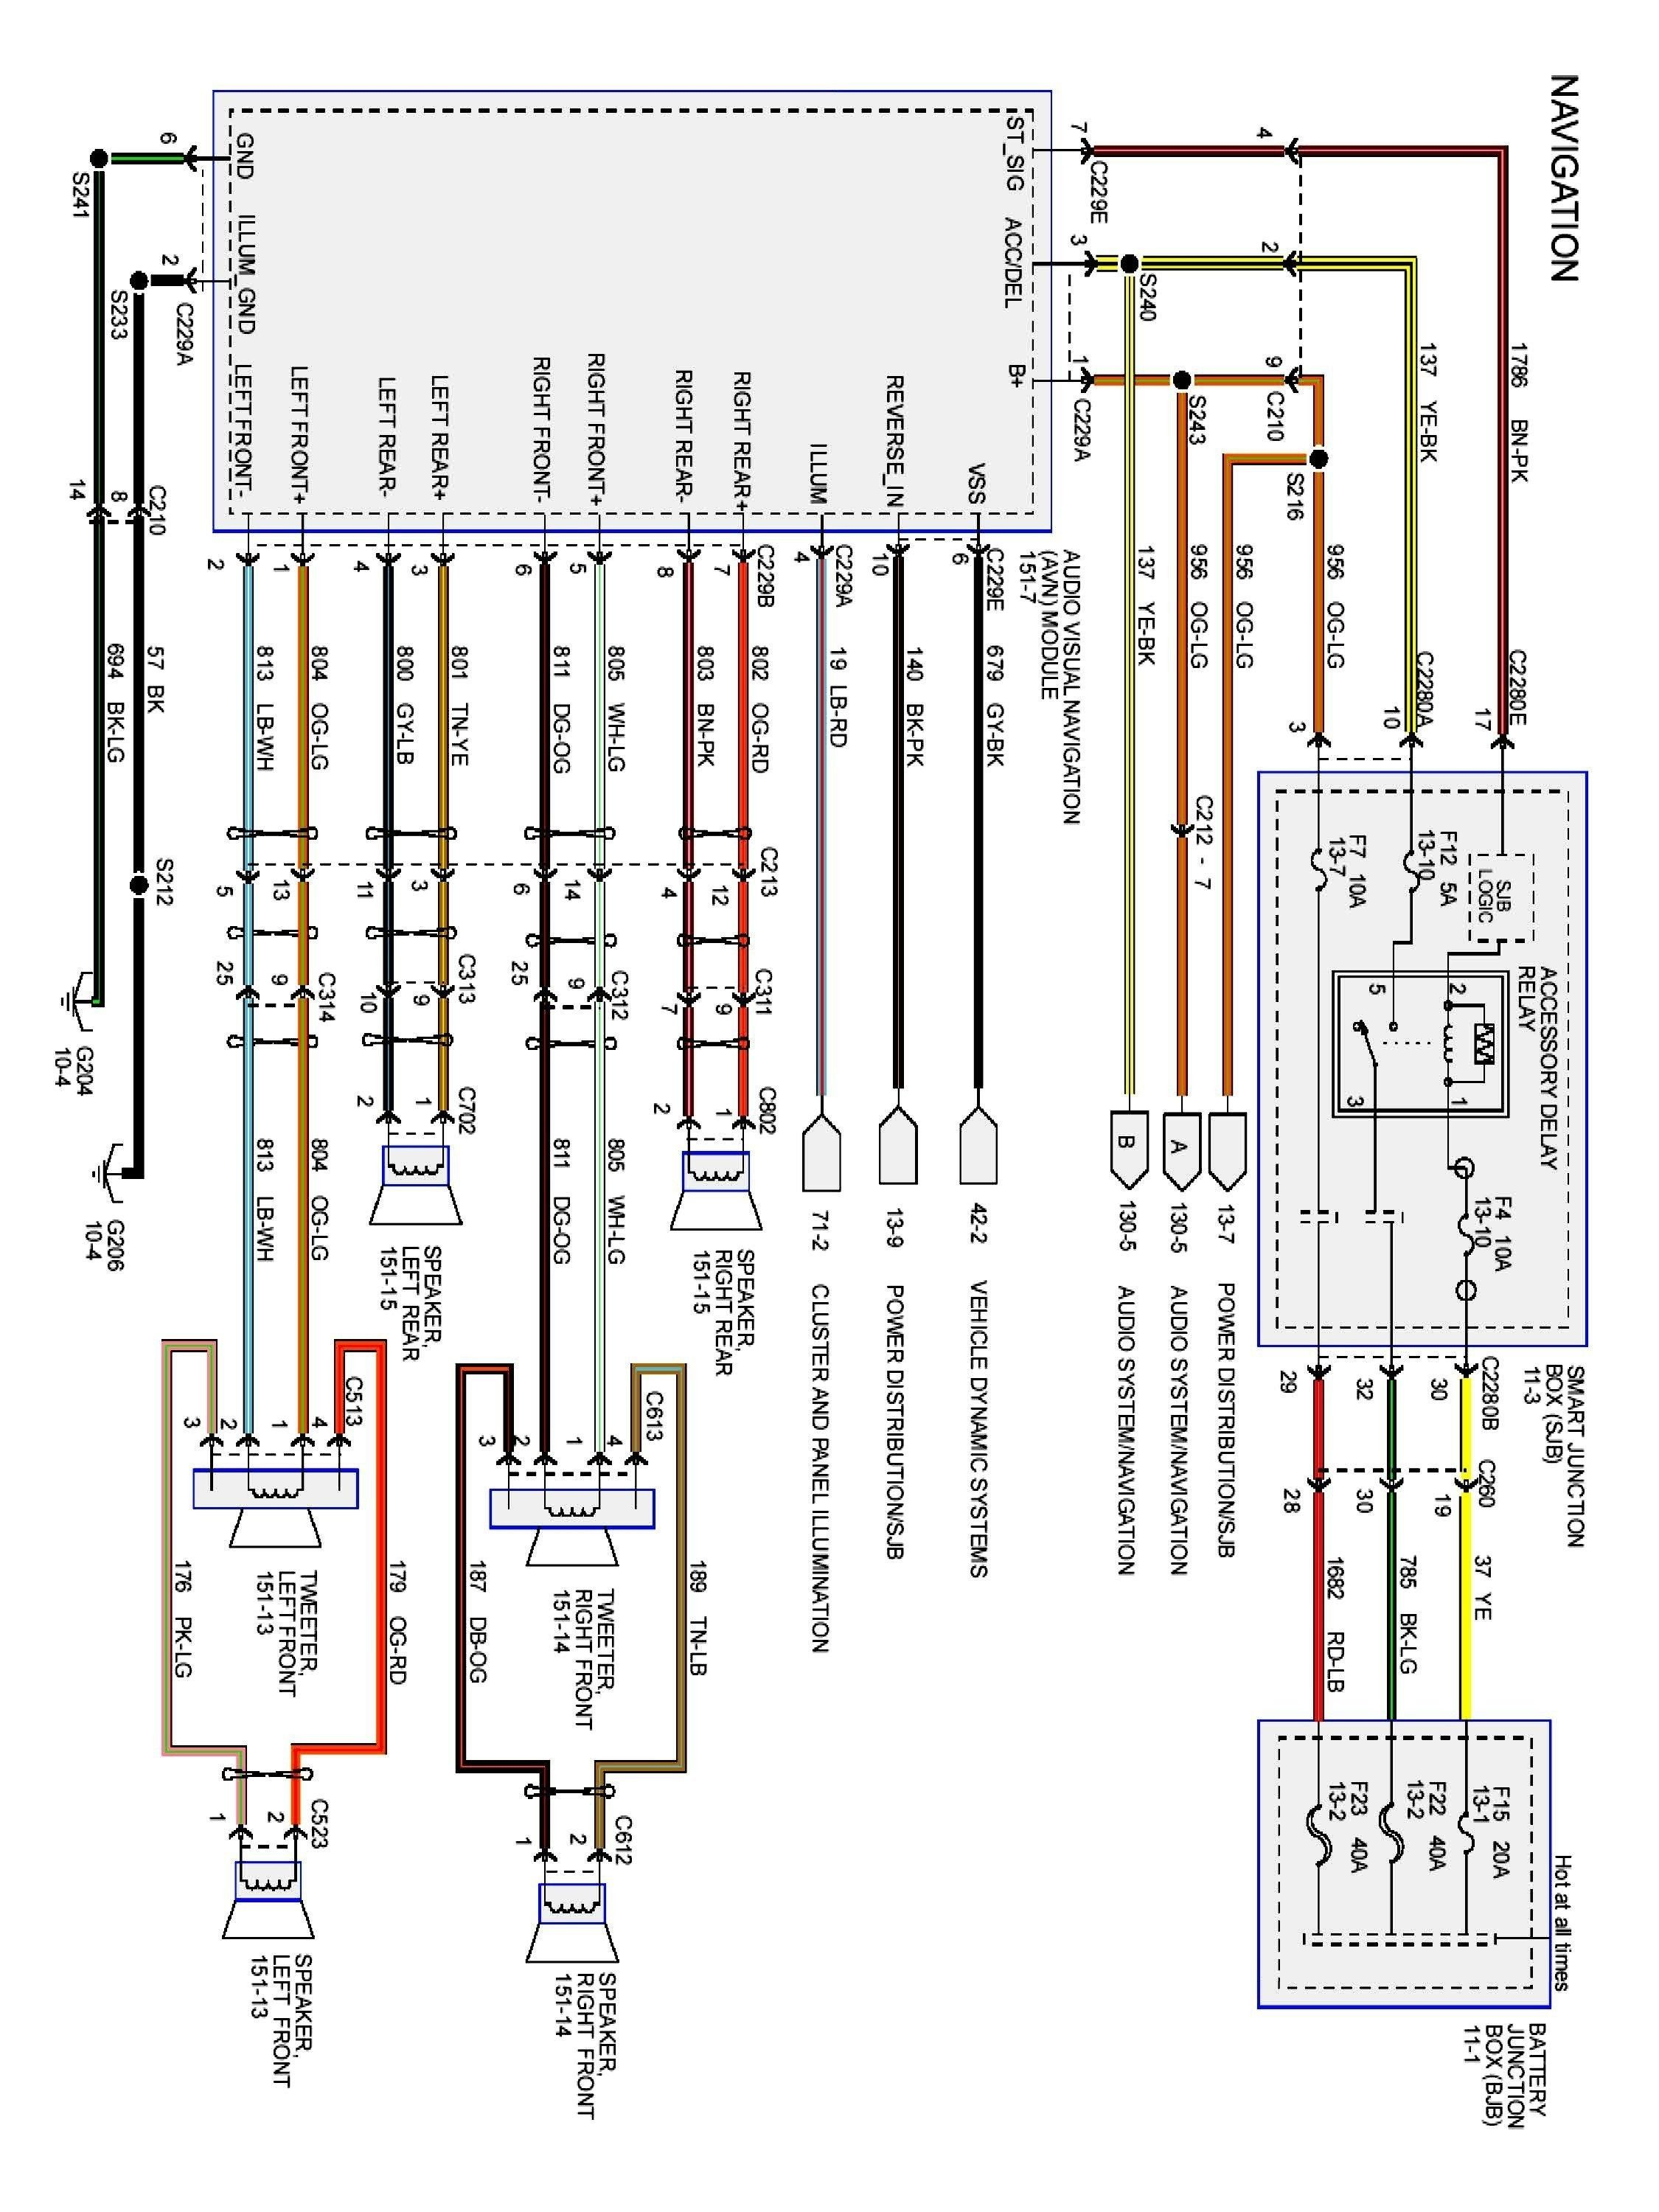 Wiring Diagram For 2010 Hyundai Accent | schematic and ...